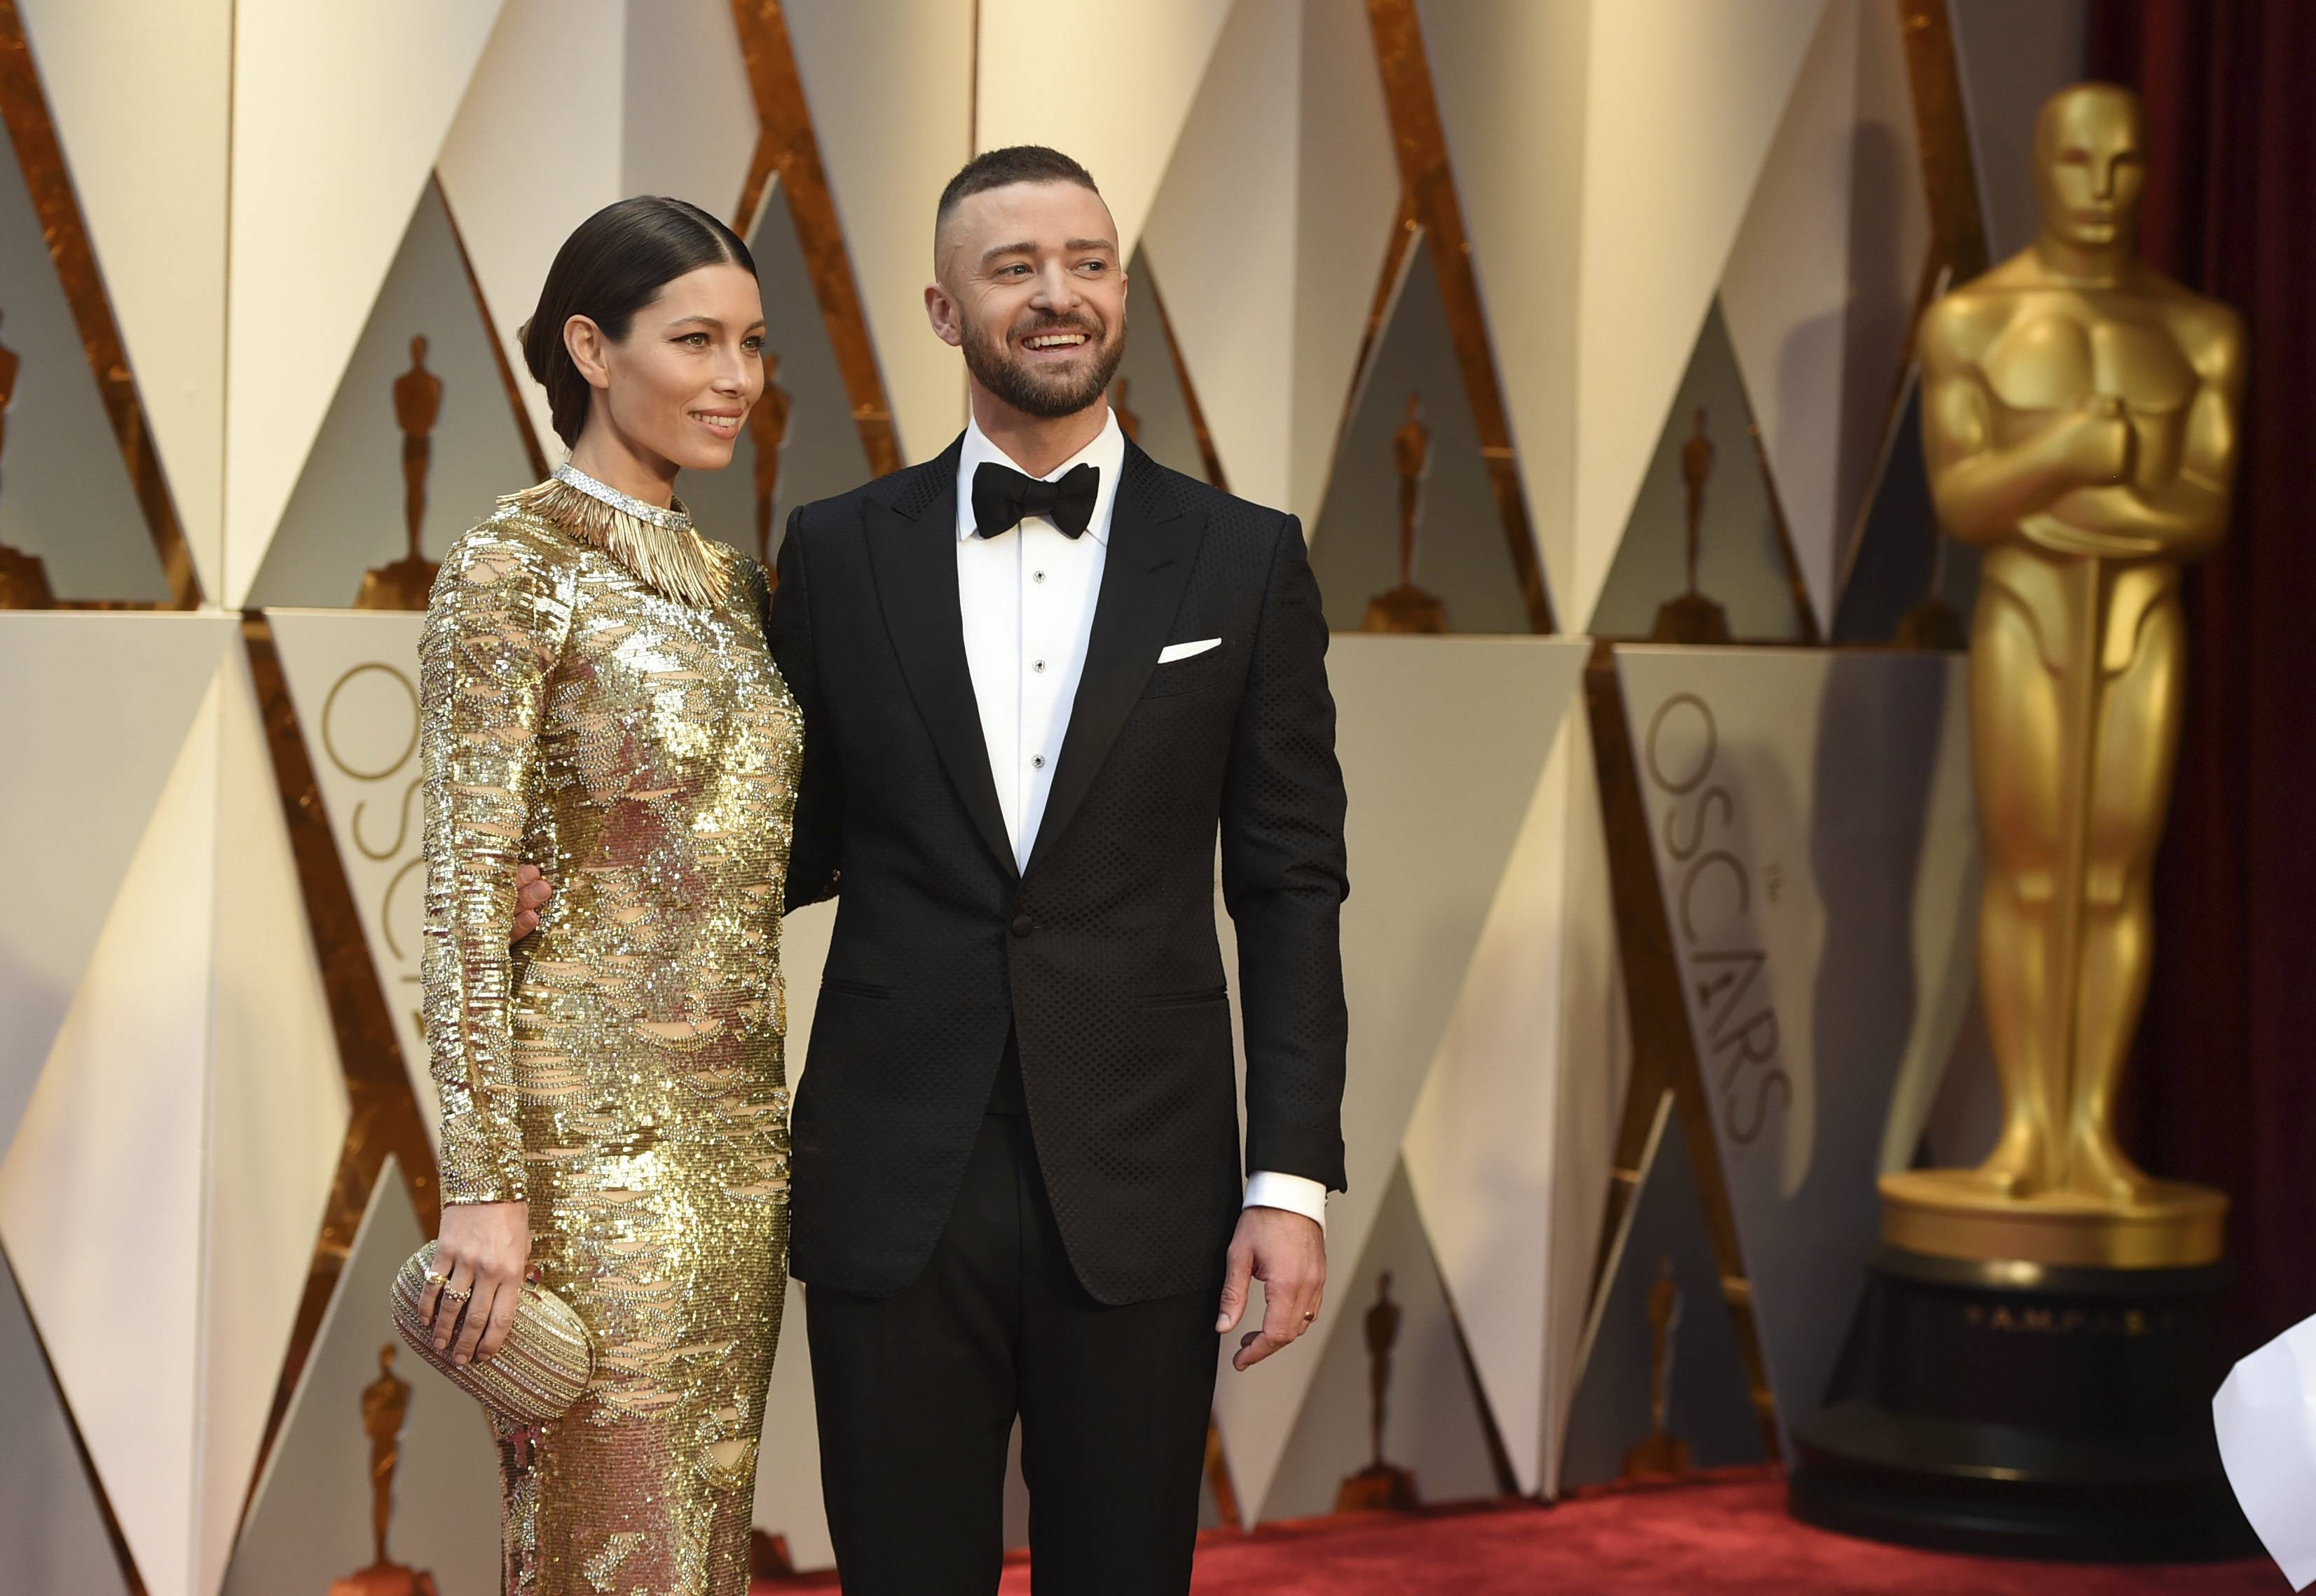 Jessica Biel, left, and Justin Timberlake arrive at the Oscars on Sunday, Feb. 26, 2017, at the Dolby Theatre in Los Angeles. (Photo by Jordan Strauss/Invision/AP)